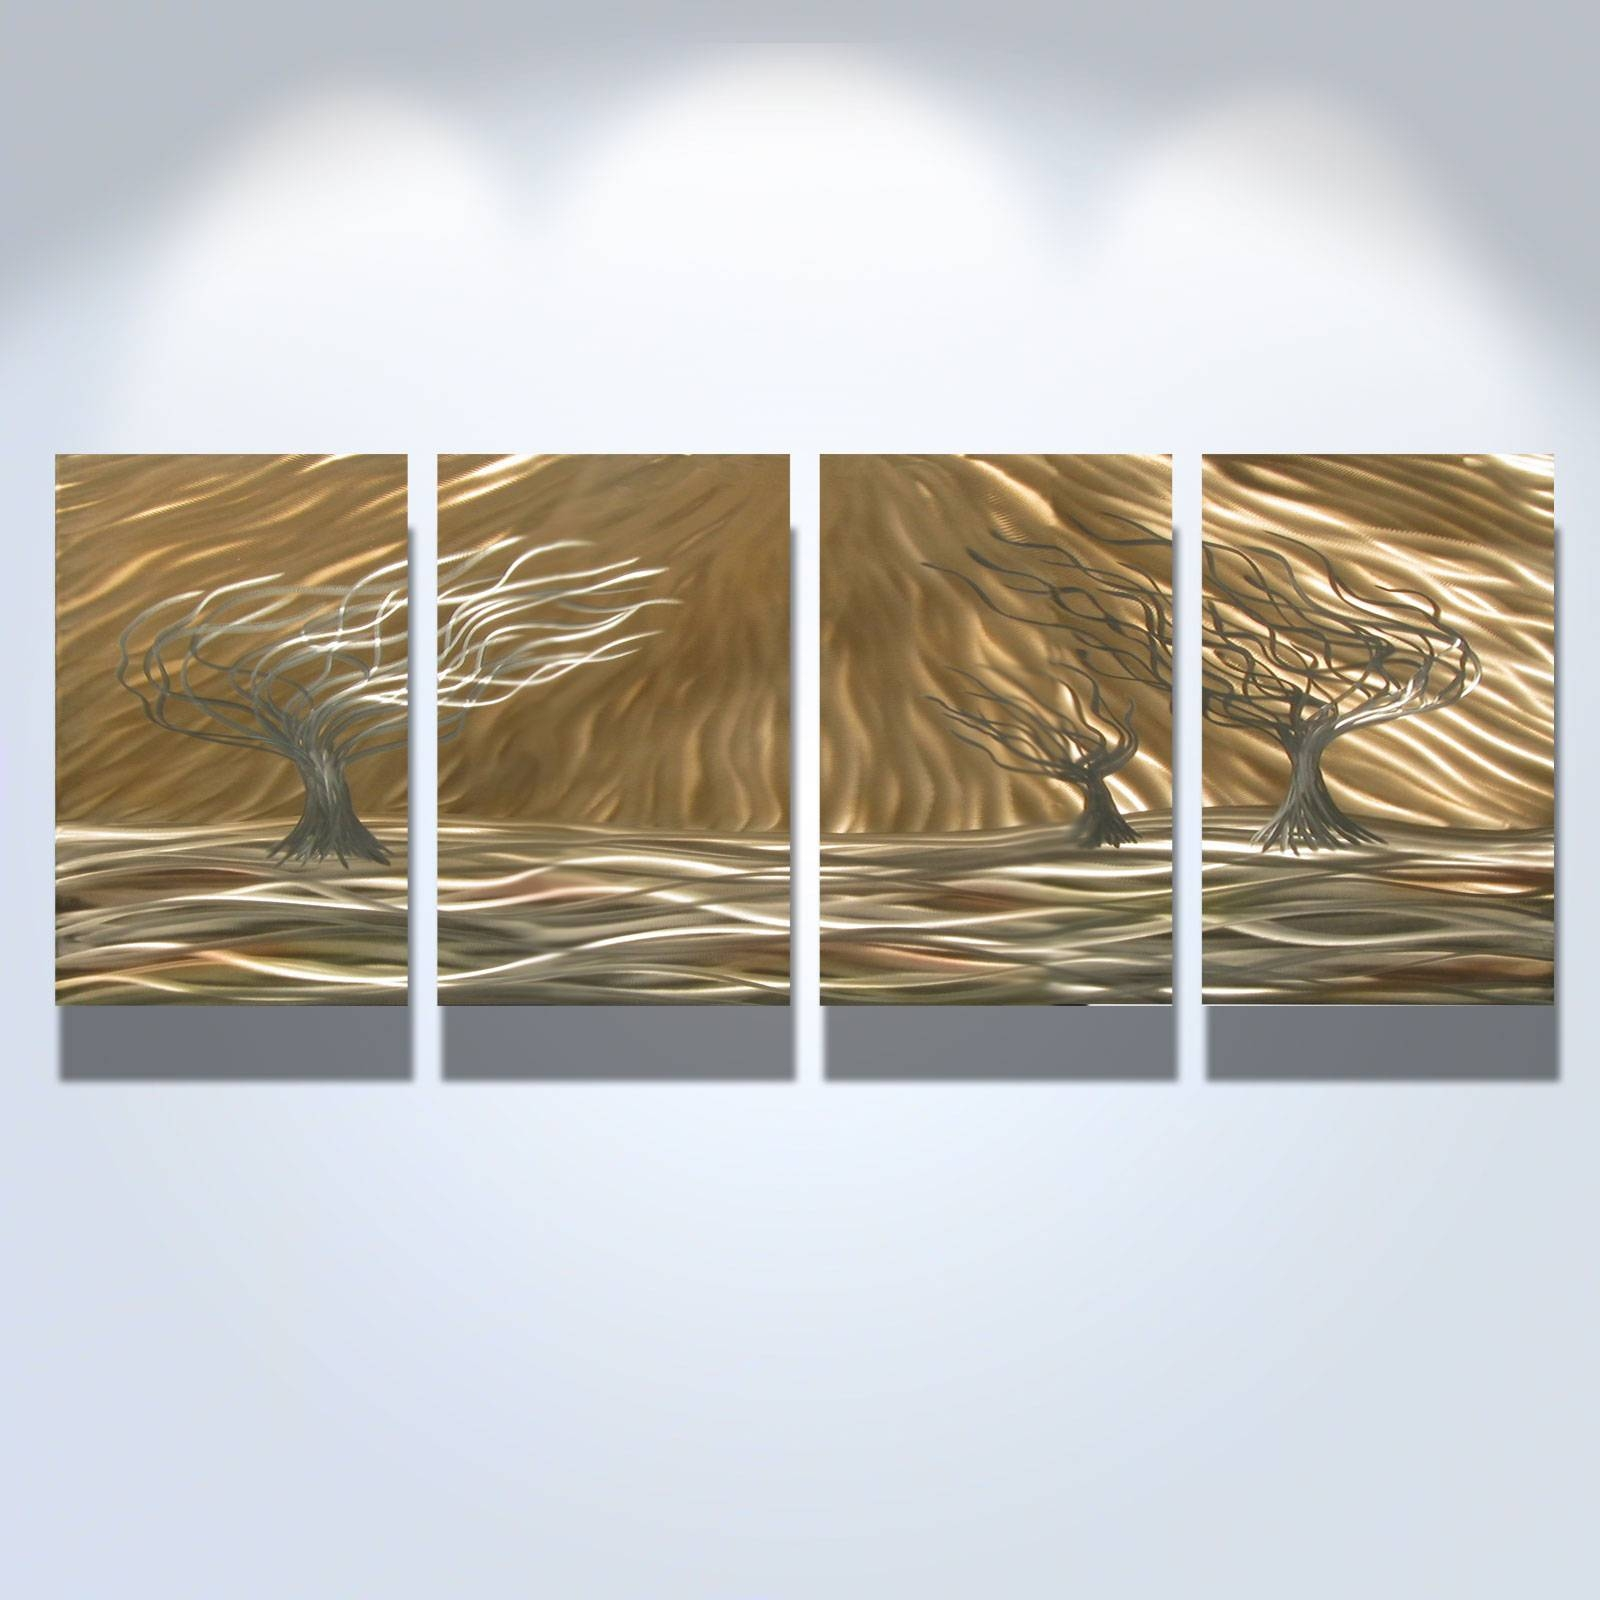 3 Trees 4 Panel – Abstract Metal Wall Art Contemporary Modern In Most Recently Released Three Panel Wall Art (View 8 of 20)